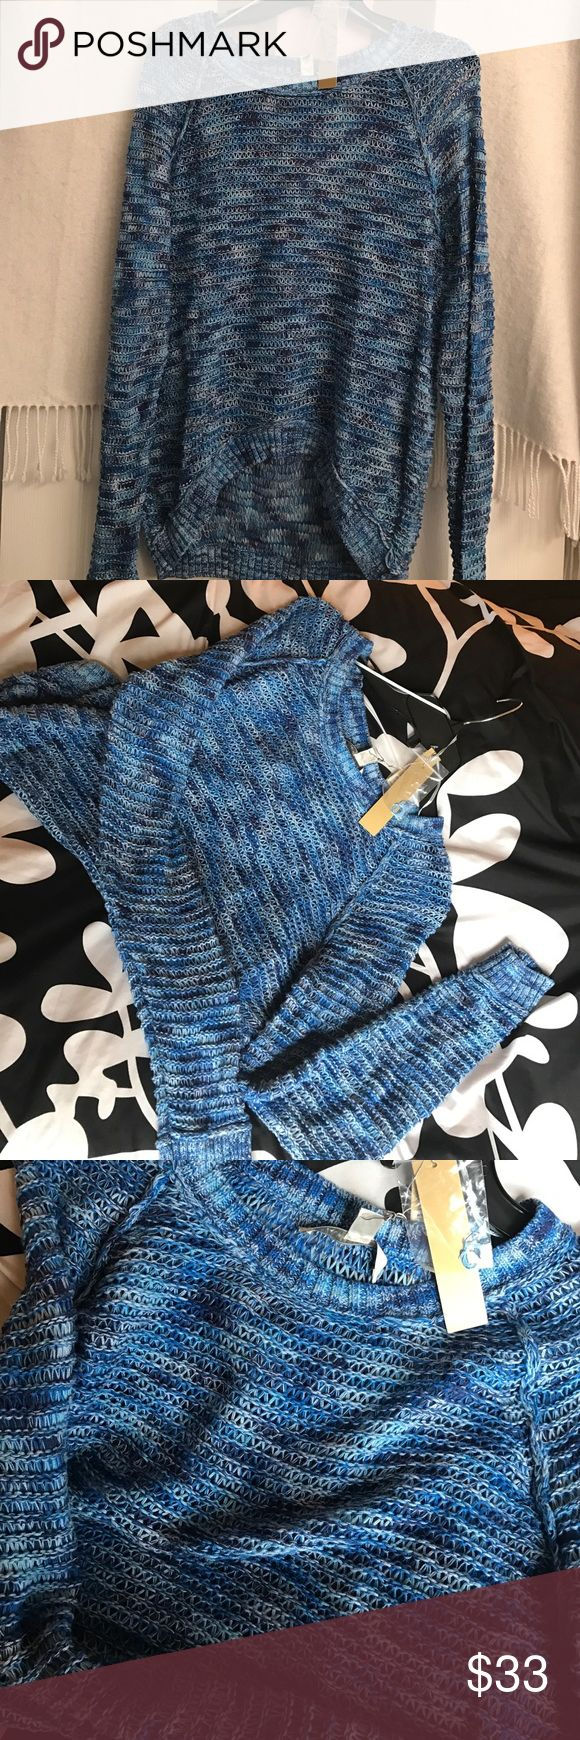 Multi Blue Open Weave Sweater Multiple hues of blue in this lightweight open weave sweater with hi-lo hem...perfect with a tank and jeans...tags on, never worn! LC Lauren Conrad Sweaters Crew & Scoop Necks